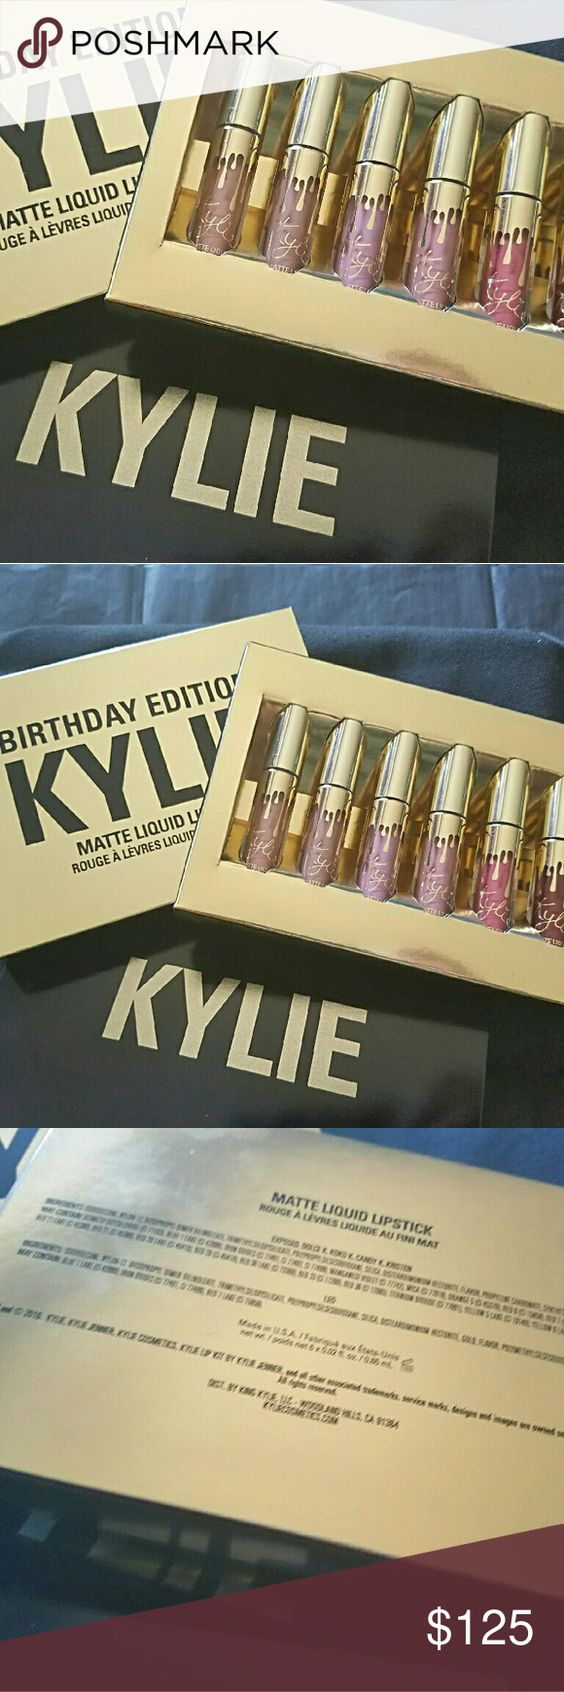 KYLIE | MATTE MINI LIP KIT SOLD OUT ON KYLIE'S WEBSITE  NEVER TO BE RELEASED AGAIN  💥💥 MAKE AN OFFER 💥💥  🚫 LOWBALLS 🚫 NO TRADES 🚫 NO HOLDS 🚫  Matte lipstick | Mini Kit  Contains: 6 Mini Matte Liquid Lipstick (6 X 0.02 fl oz./oz. liq / 0.65 ml)  The #KylieCosmetics Matte Lipstick Mini Kit is the perfect way to take your favorite matte lipstick to go. Each kit comes with 6 mini sizes of Kylie's favorite shades packaged in special limited edition gold packaging in honor of Kylie's 19th…